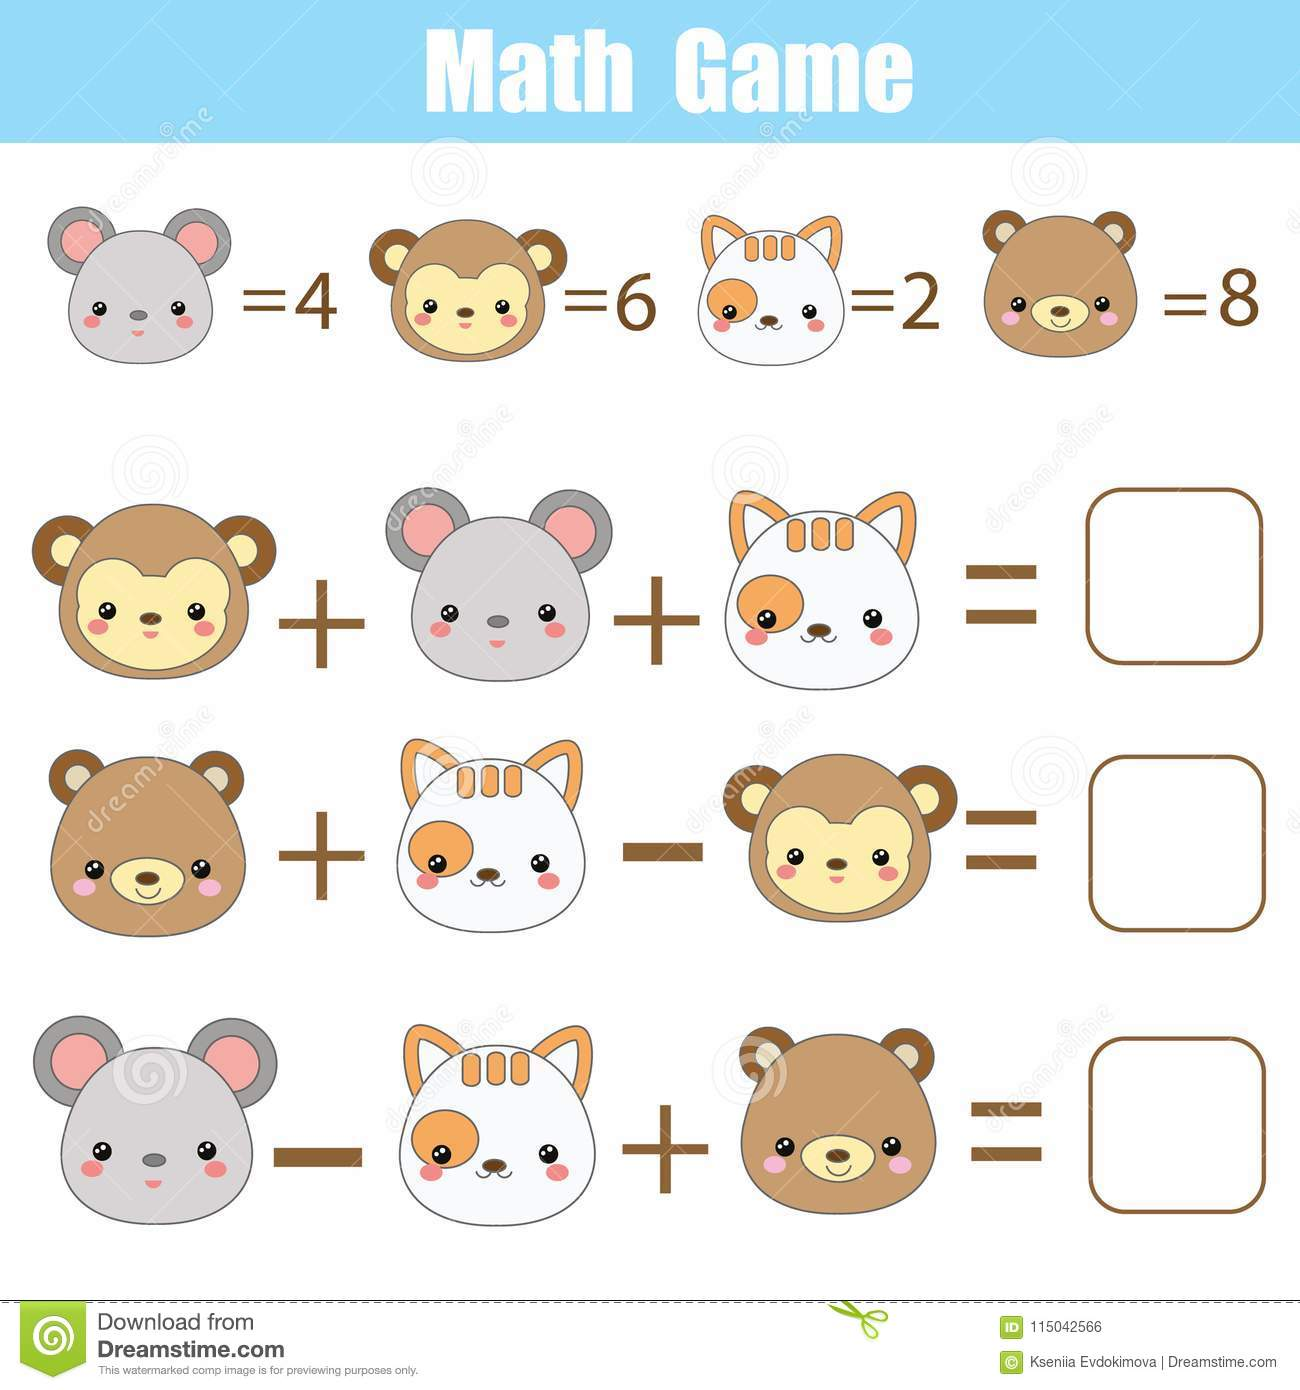 Math Educational Game For Children Counting Equations Mathematics Worksheet With Animals Faces